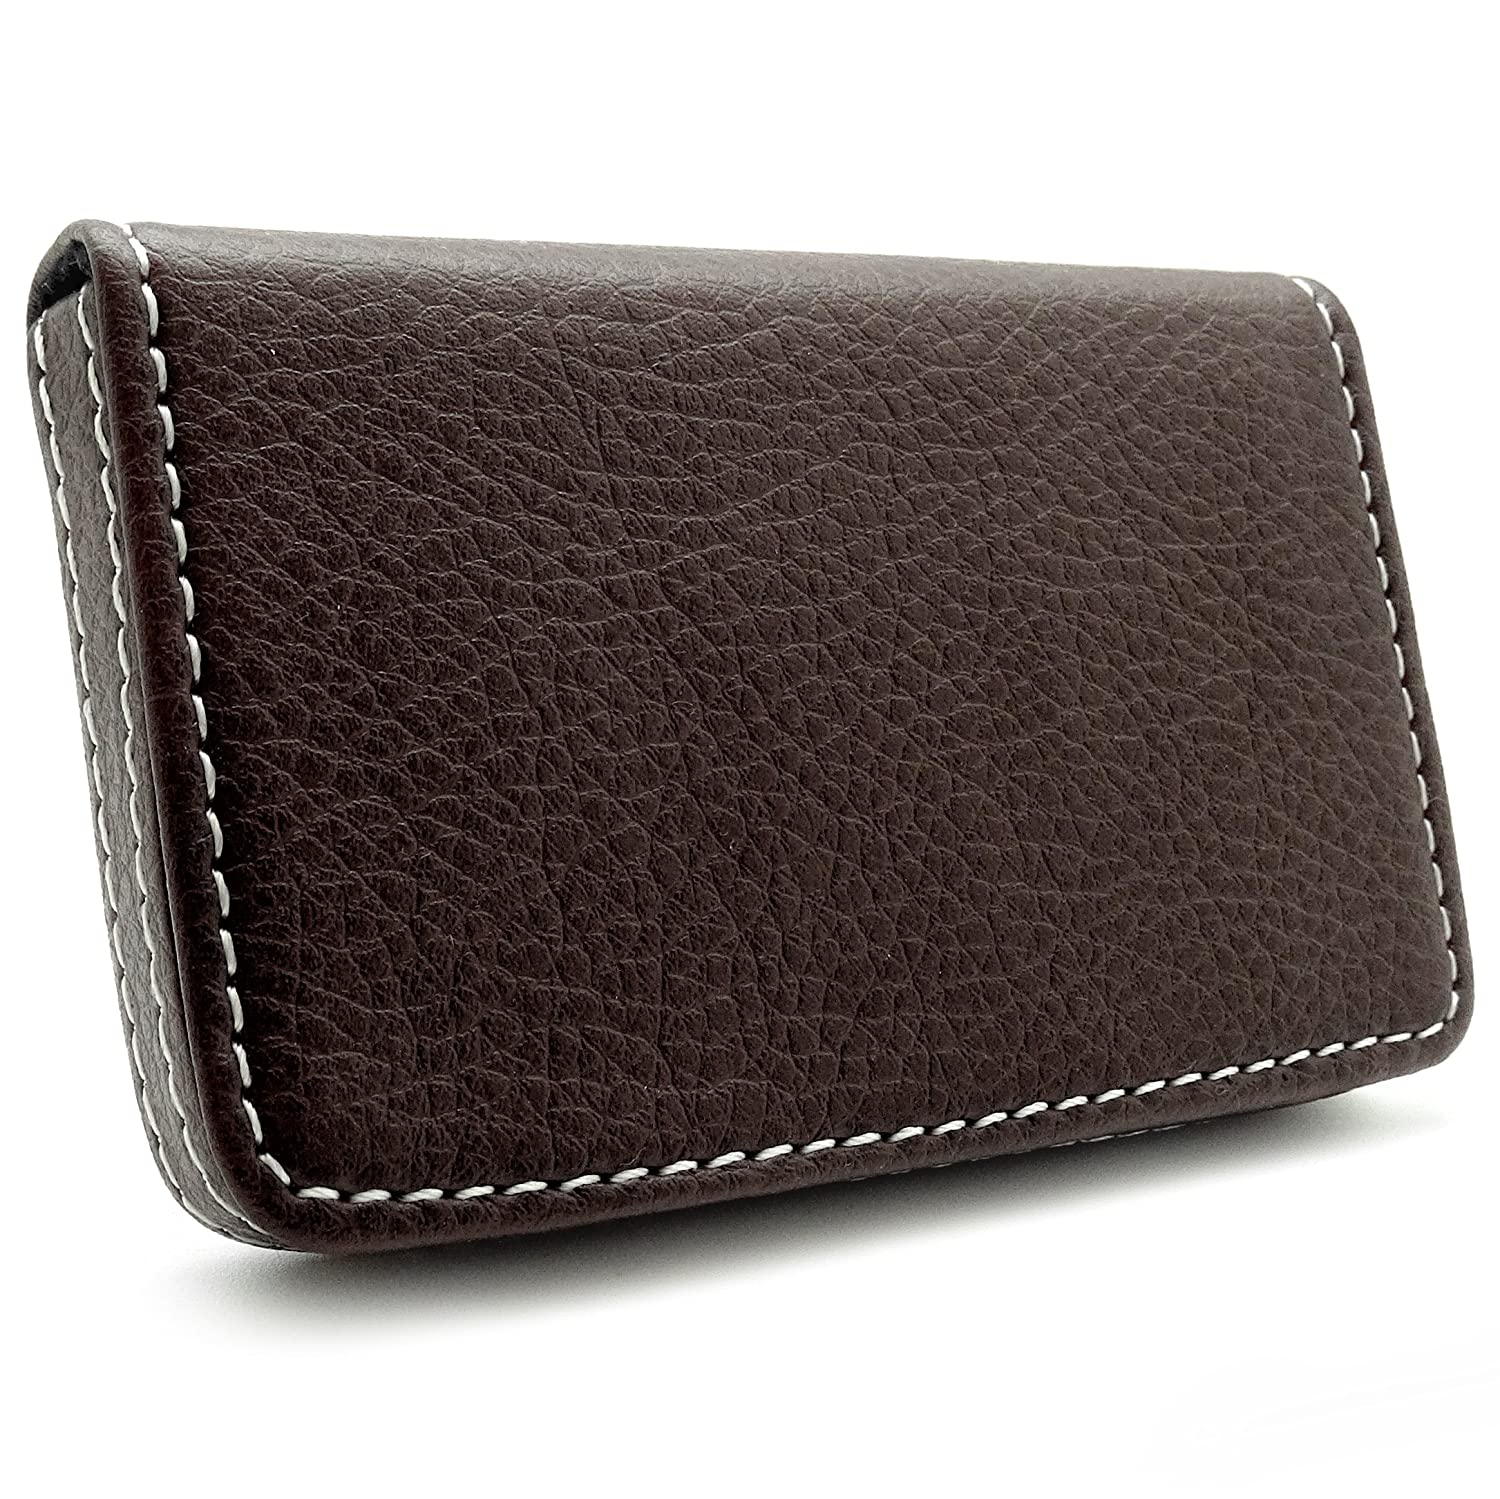 Amazon.com : Rembrandt Leather Business Card Holder - Brown : Office ...